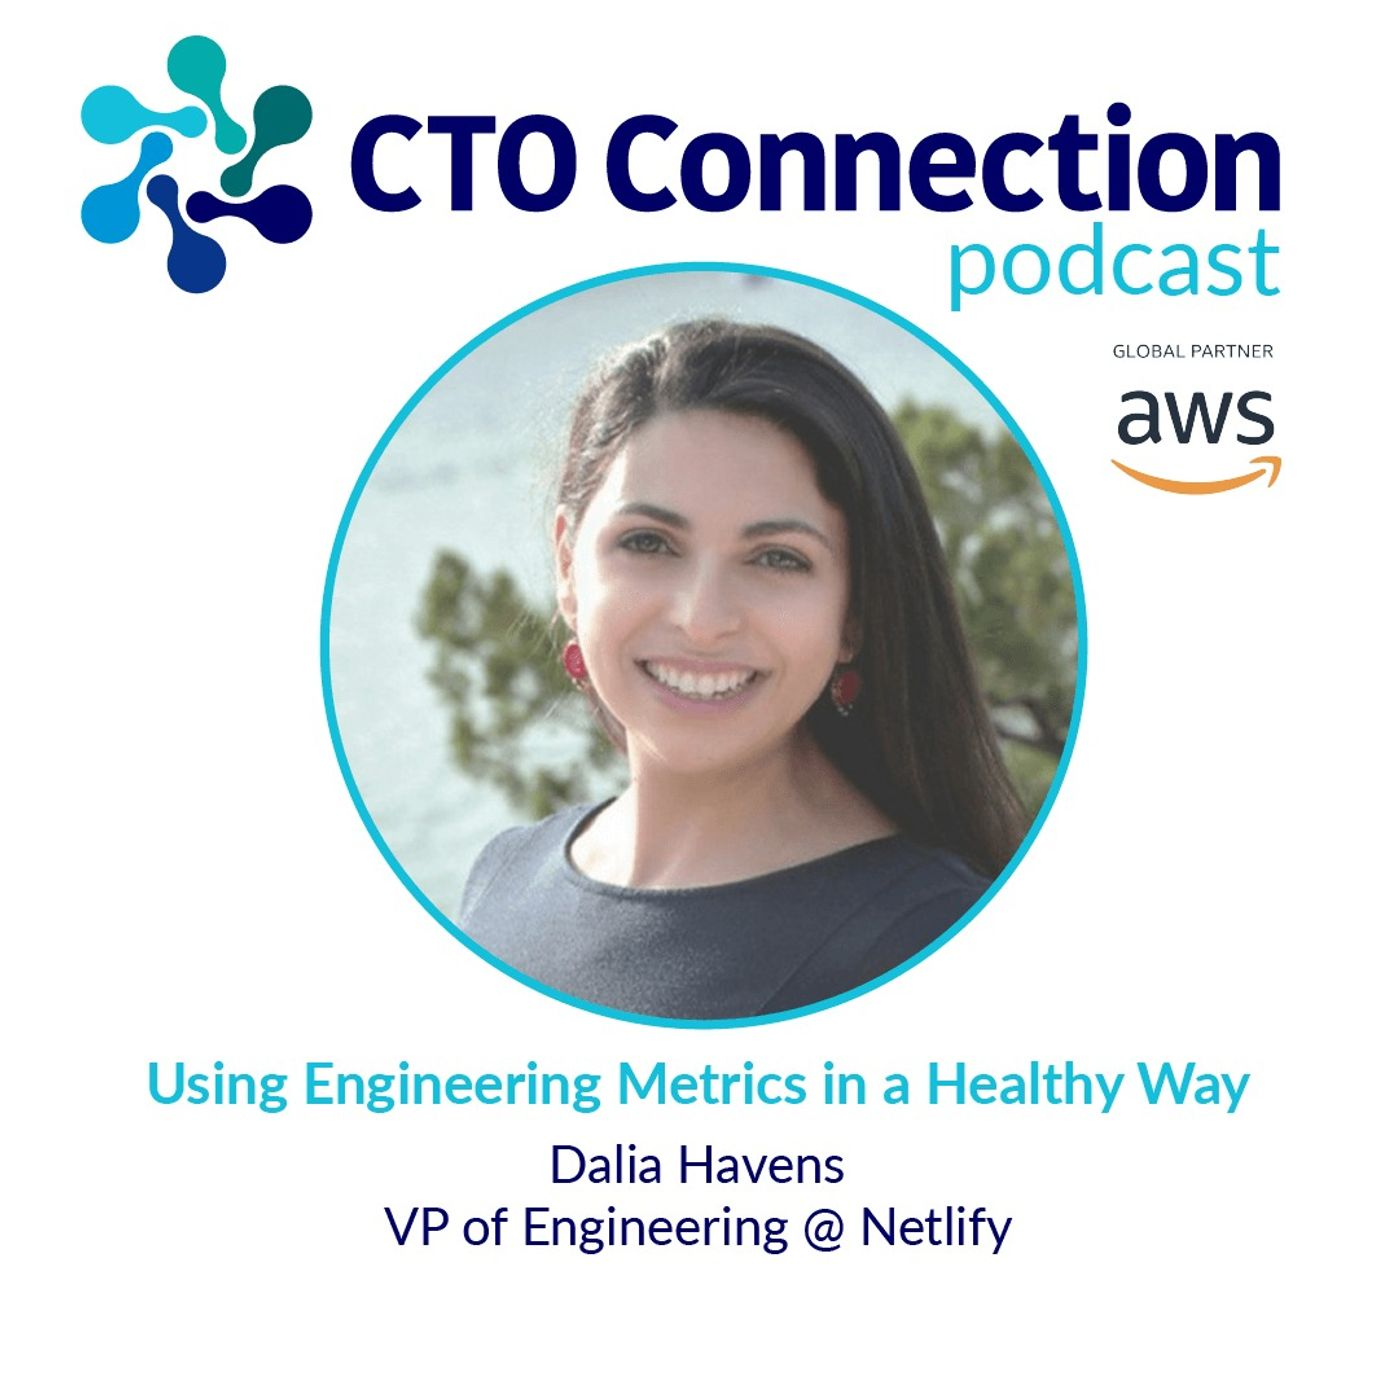 Using Engineering Metrics in a Healthy Way with Dalia Havens